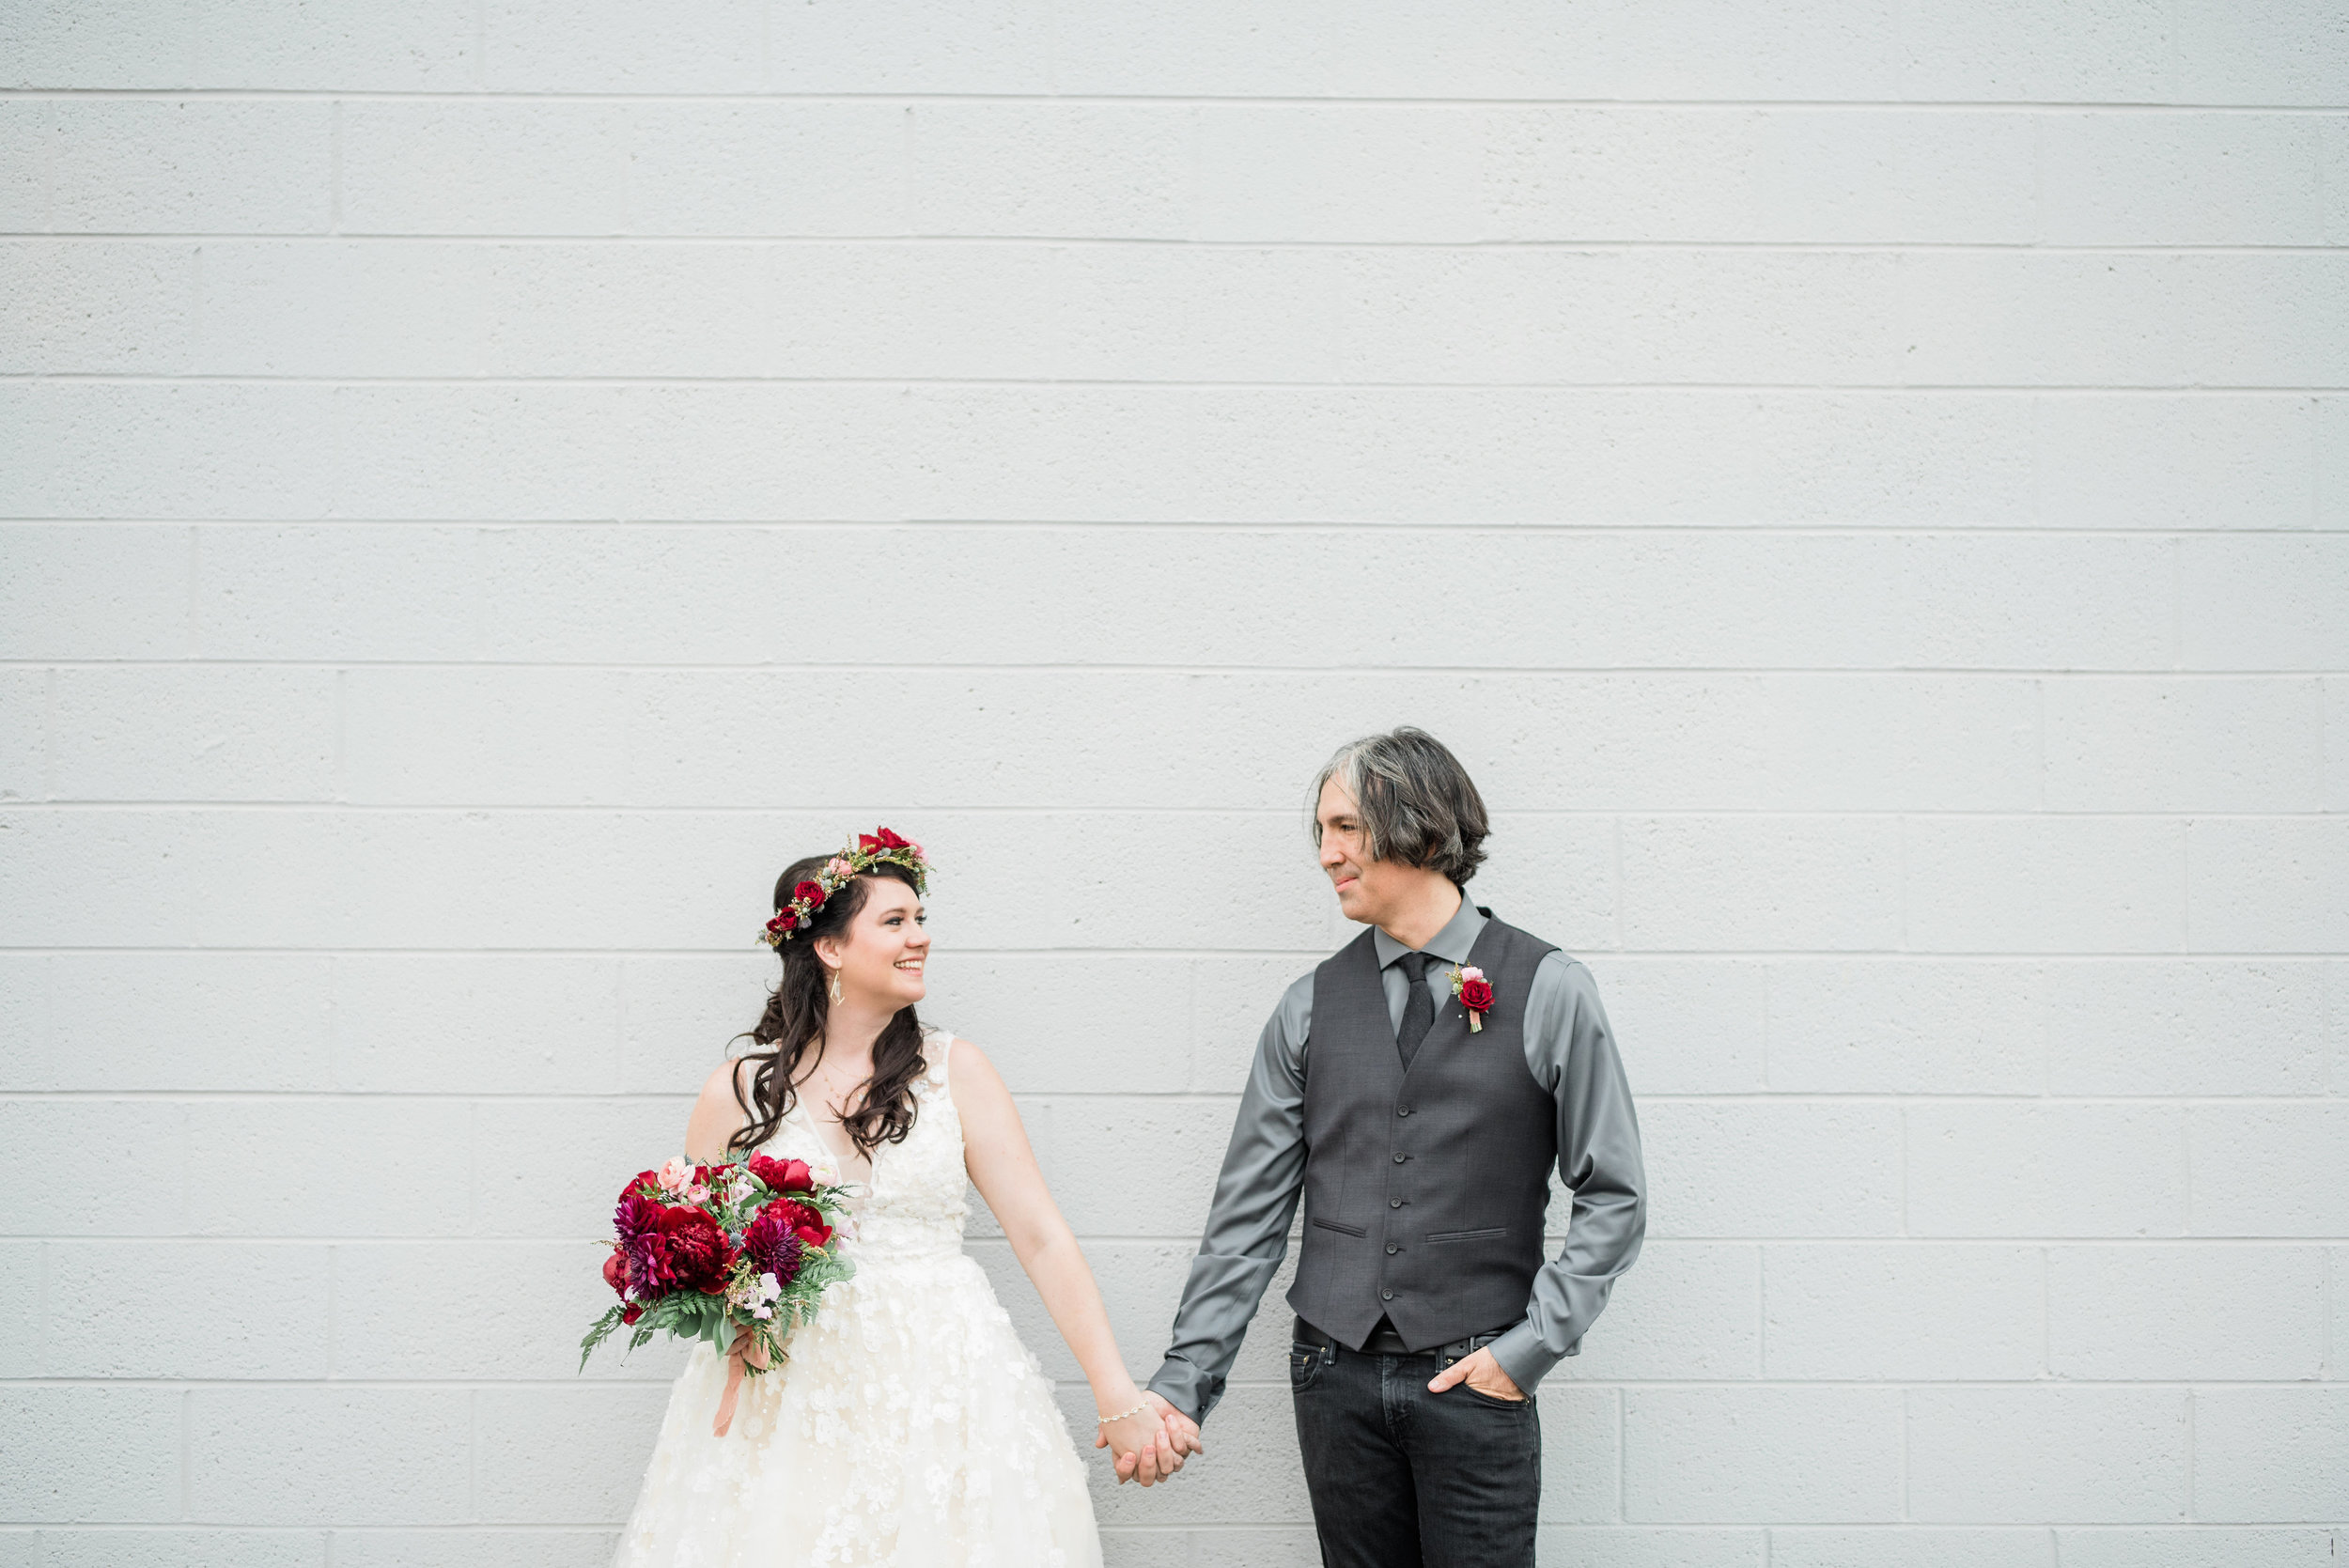 Book Inspired Wedding in Phoenix - Bride and Groom